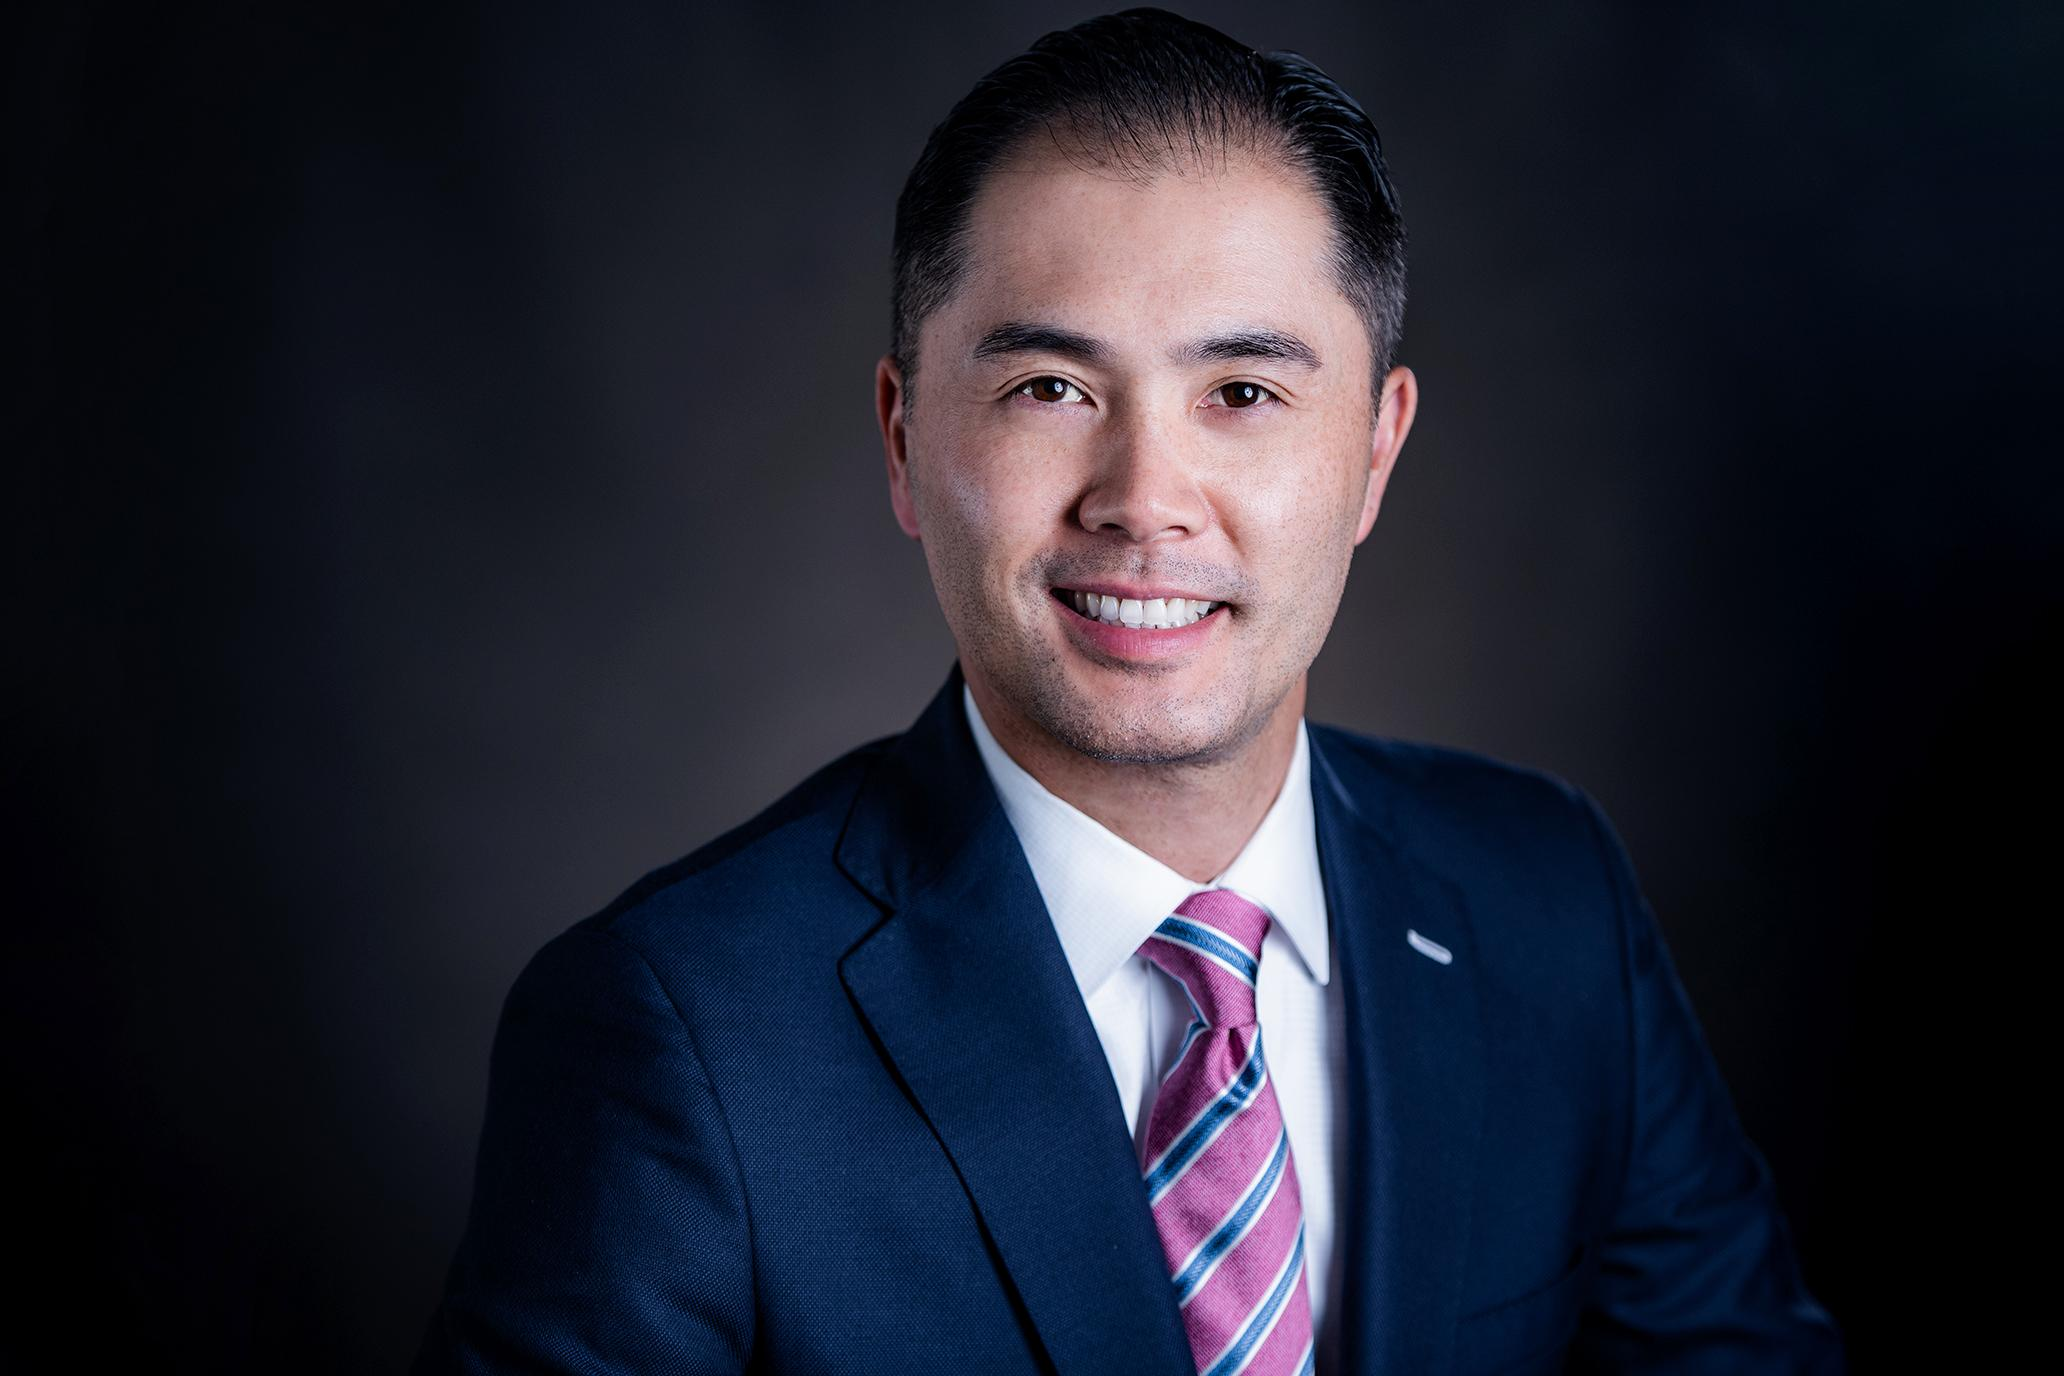 MYCHAEL A. NGUYEN New York Life Managing Partner